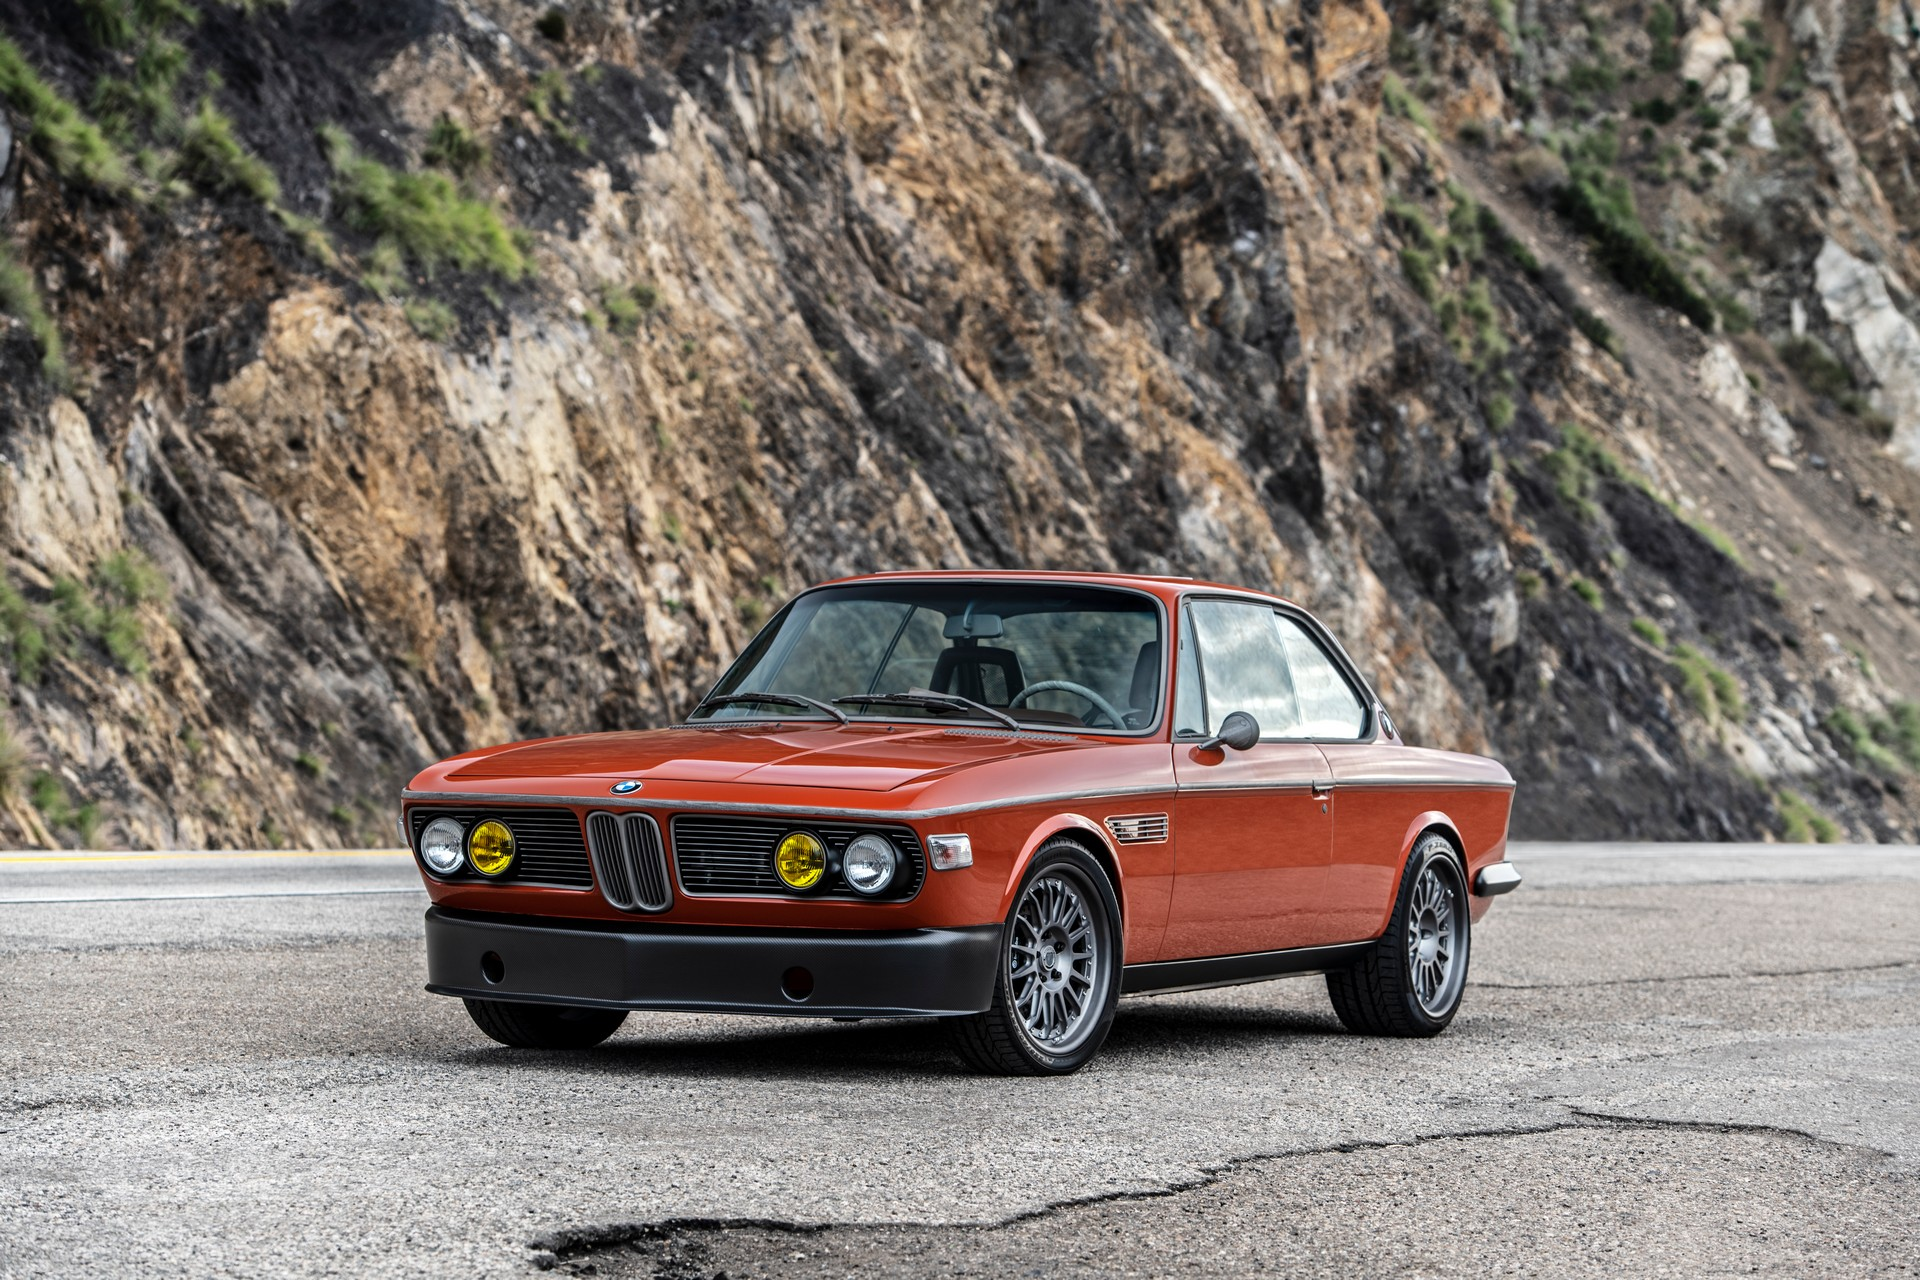 SPEEDKORE-1974-BMW-3.0-CS-8